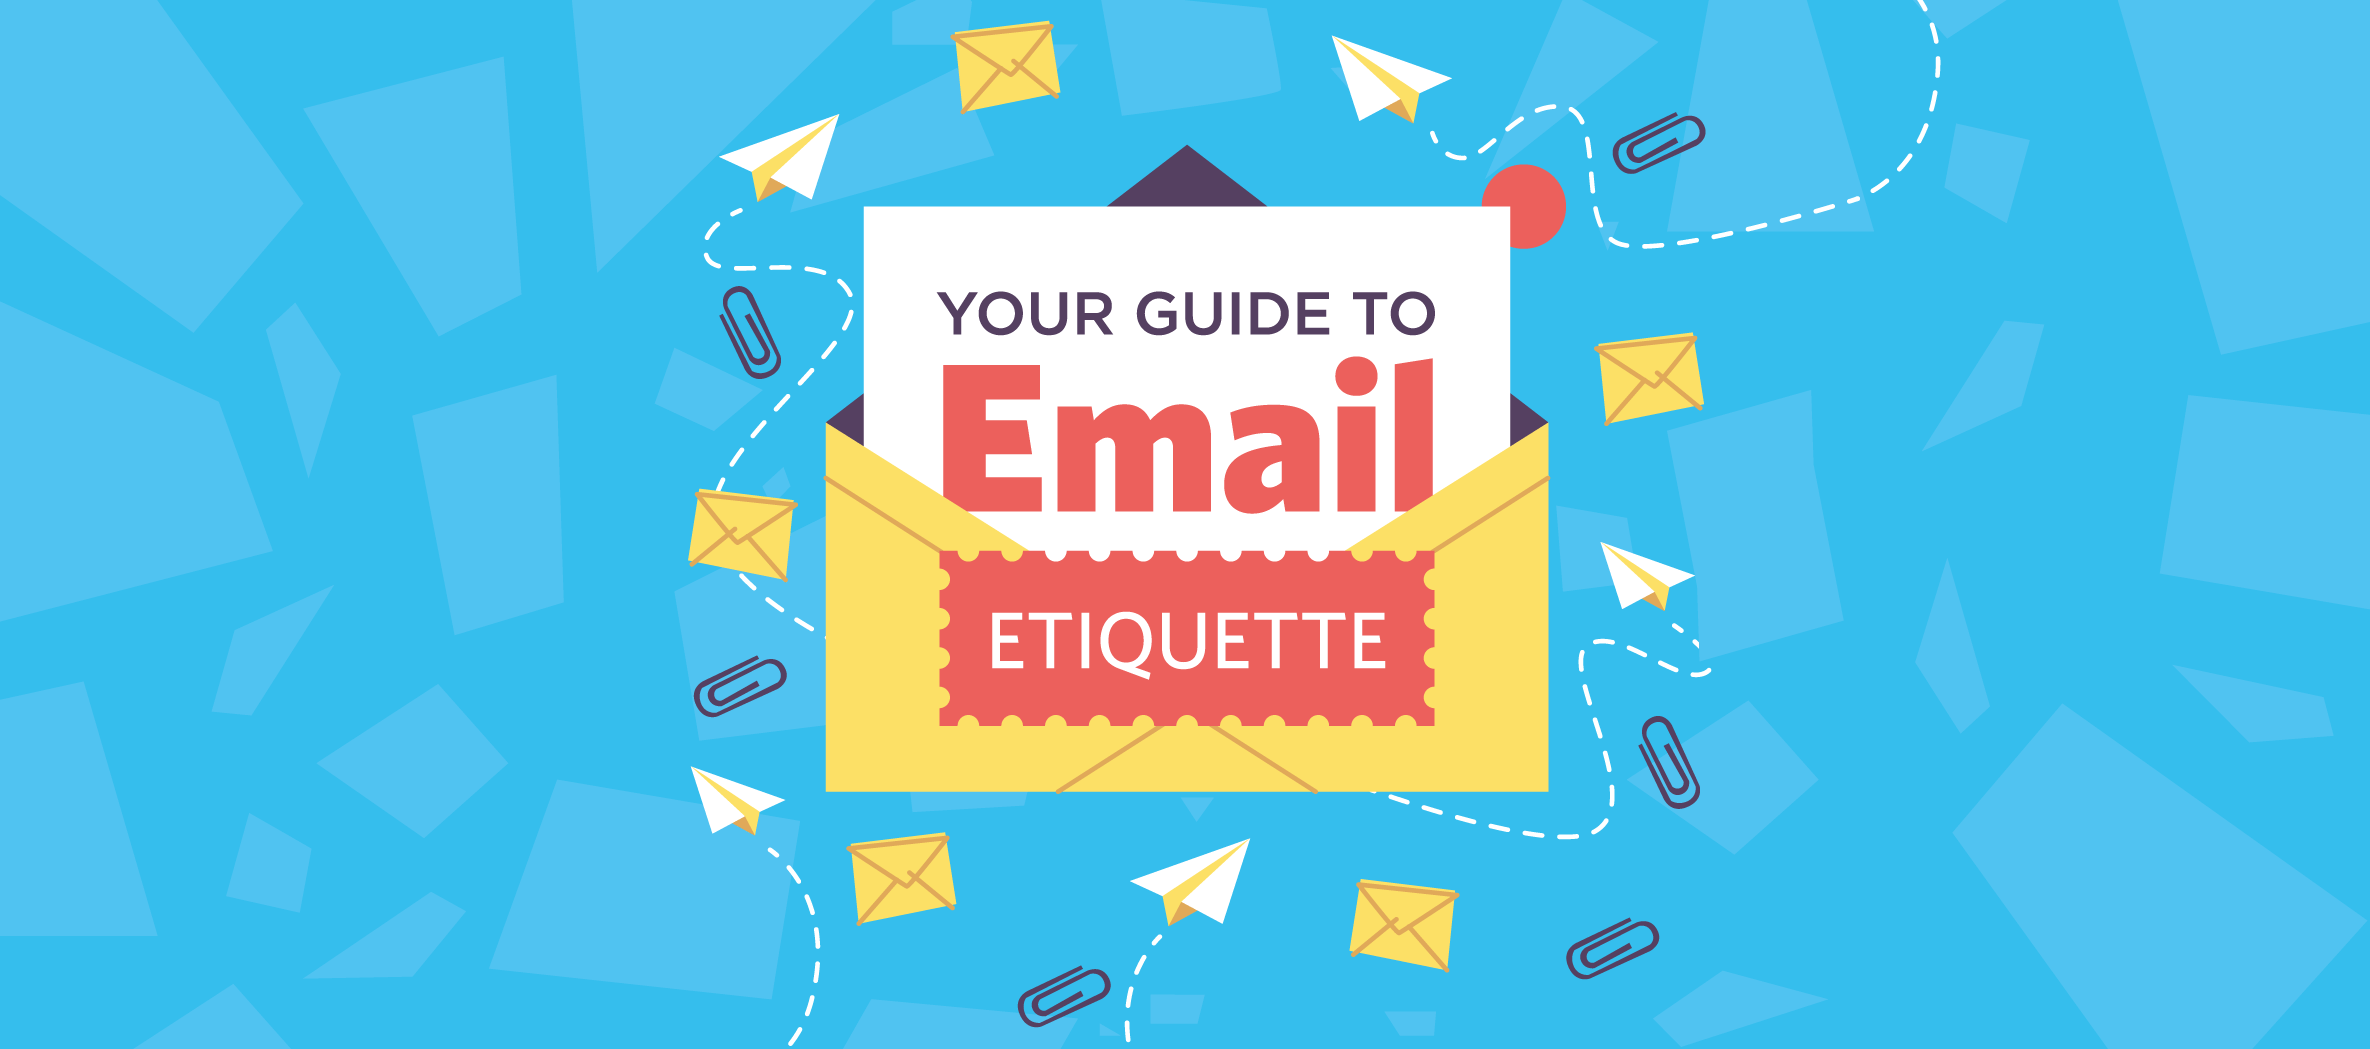 Your Guide to Email Etiquette